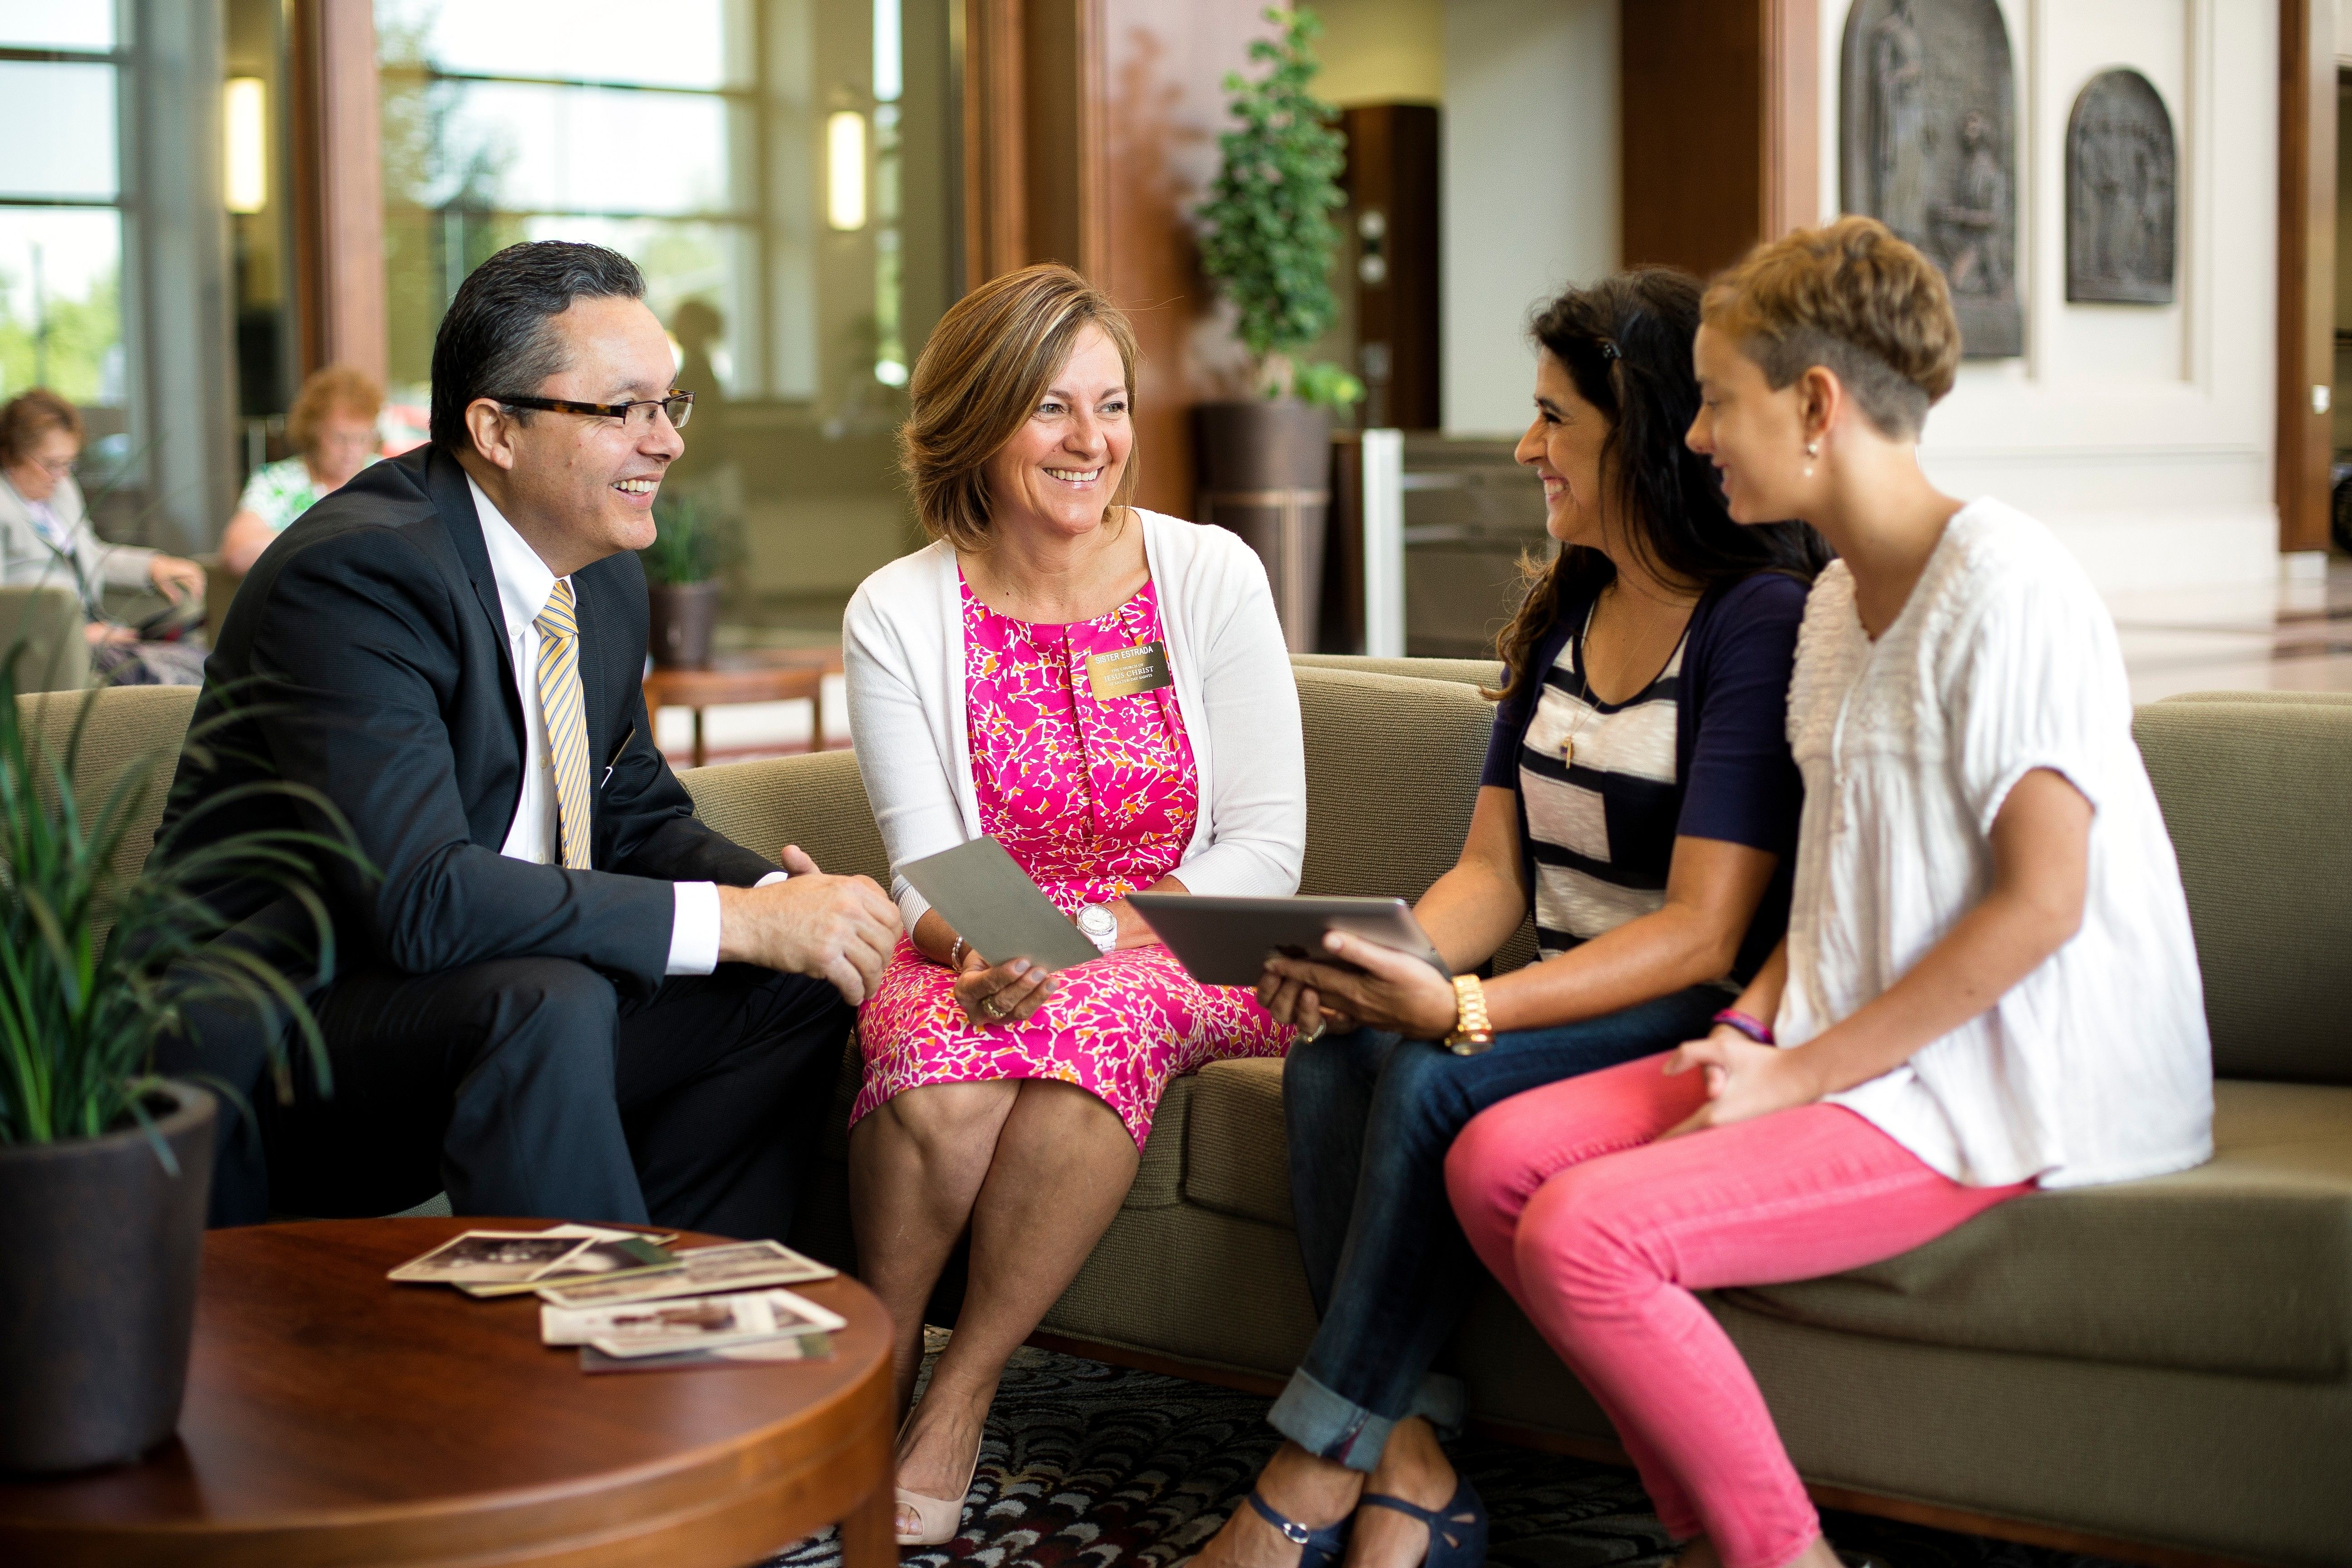 A senior missionary couple teaching family history to a mother and daughter.